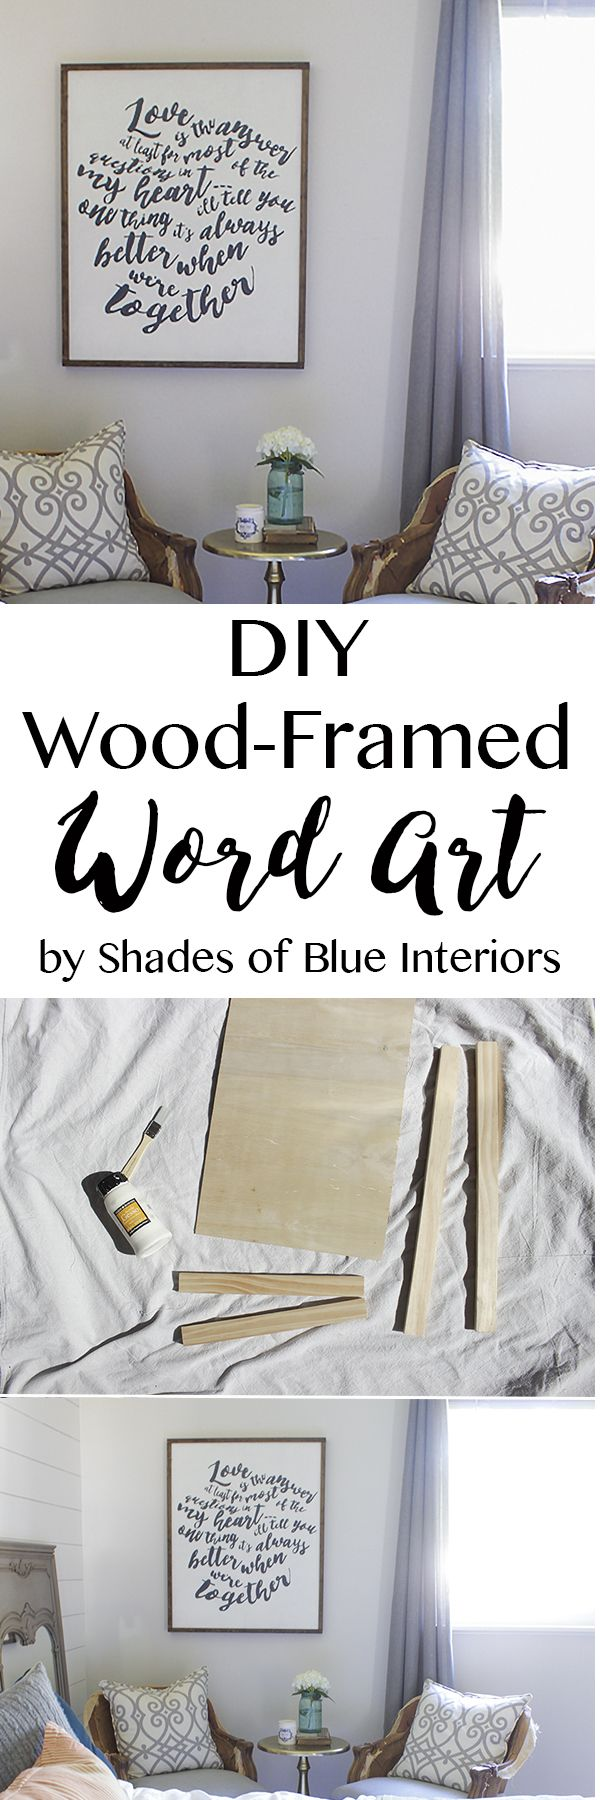 "How to make wood-framed word art out of 1x2s and 1/4"" plywood. Can be customized to any size and free printable of Jack Johnson lyric word art included."